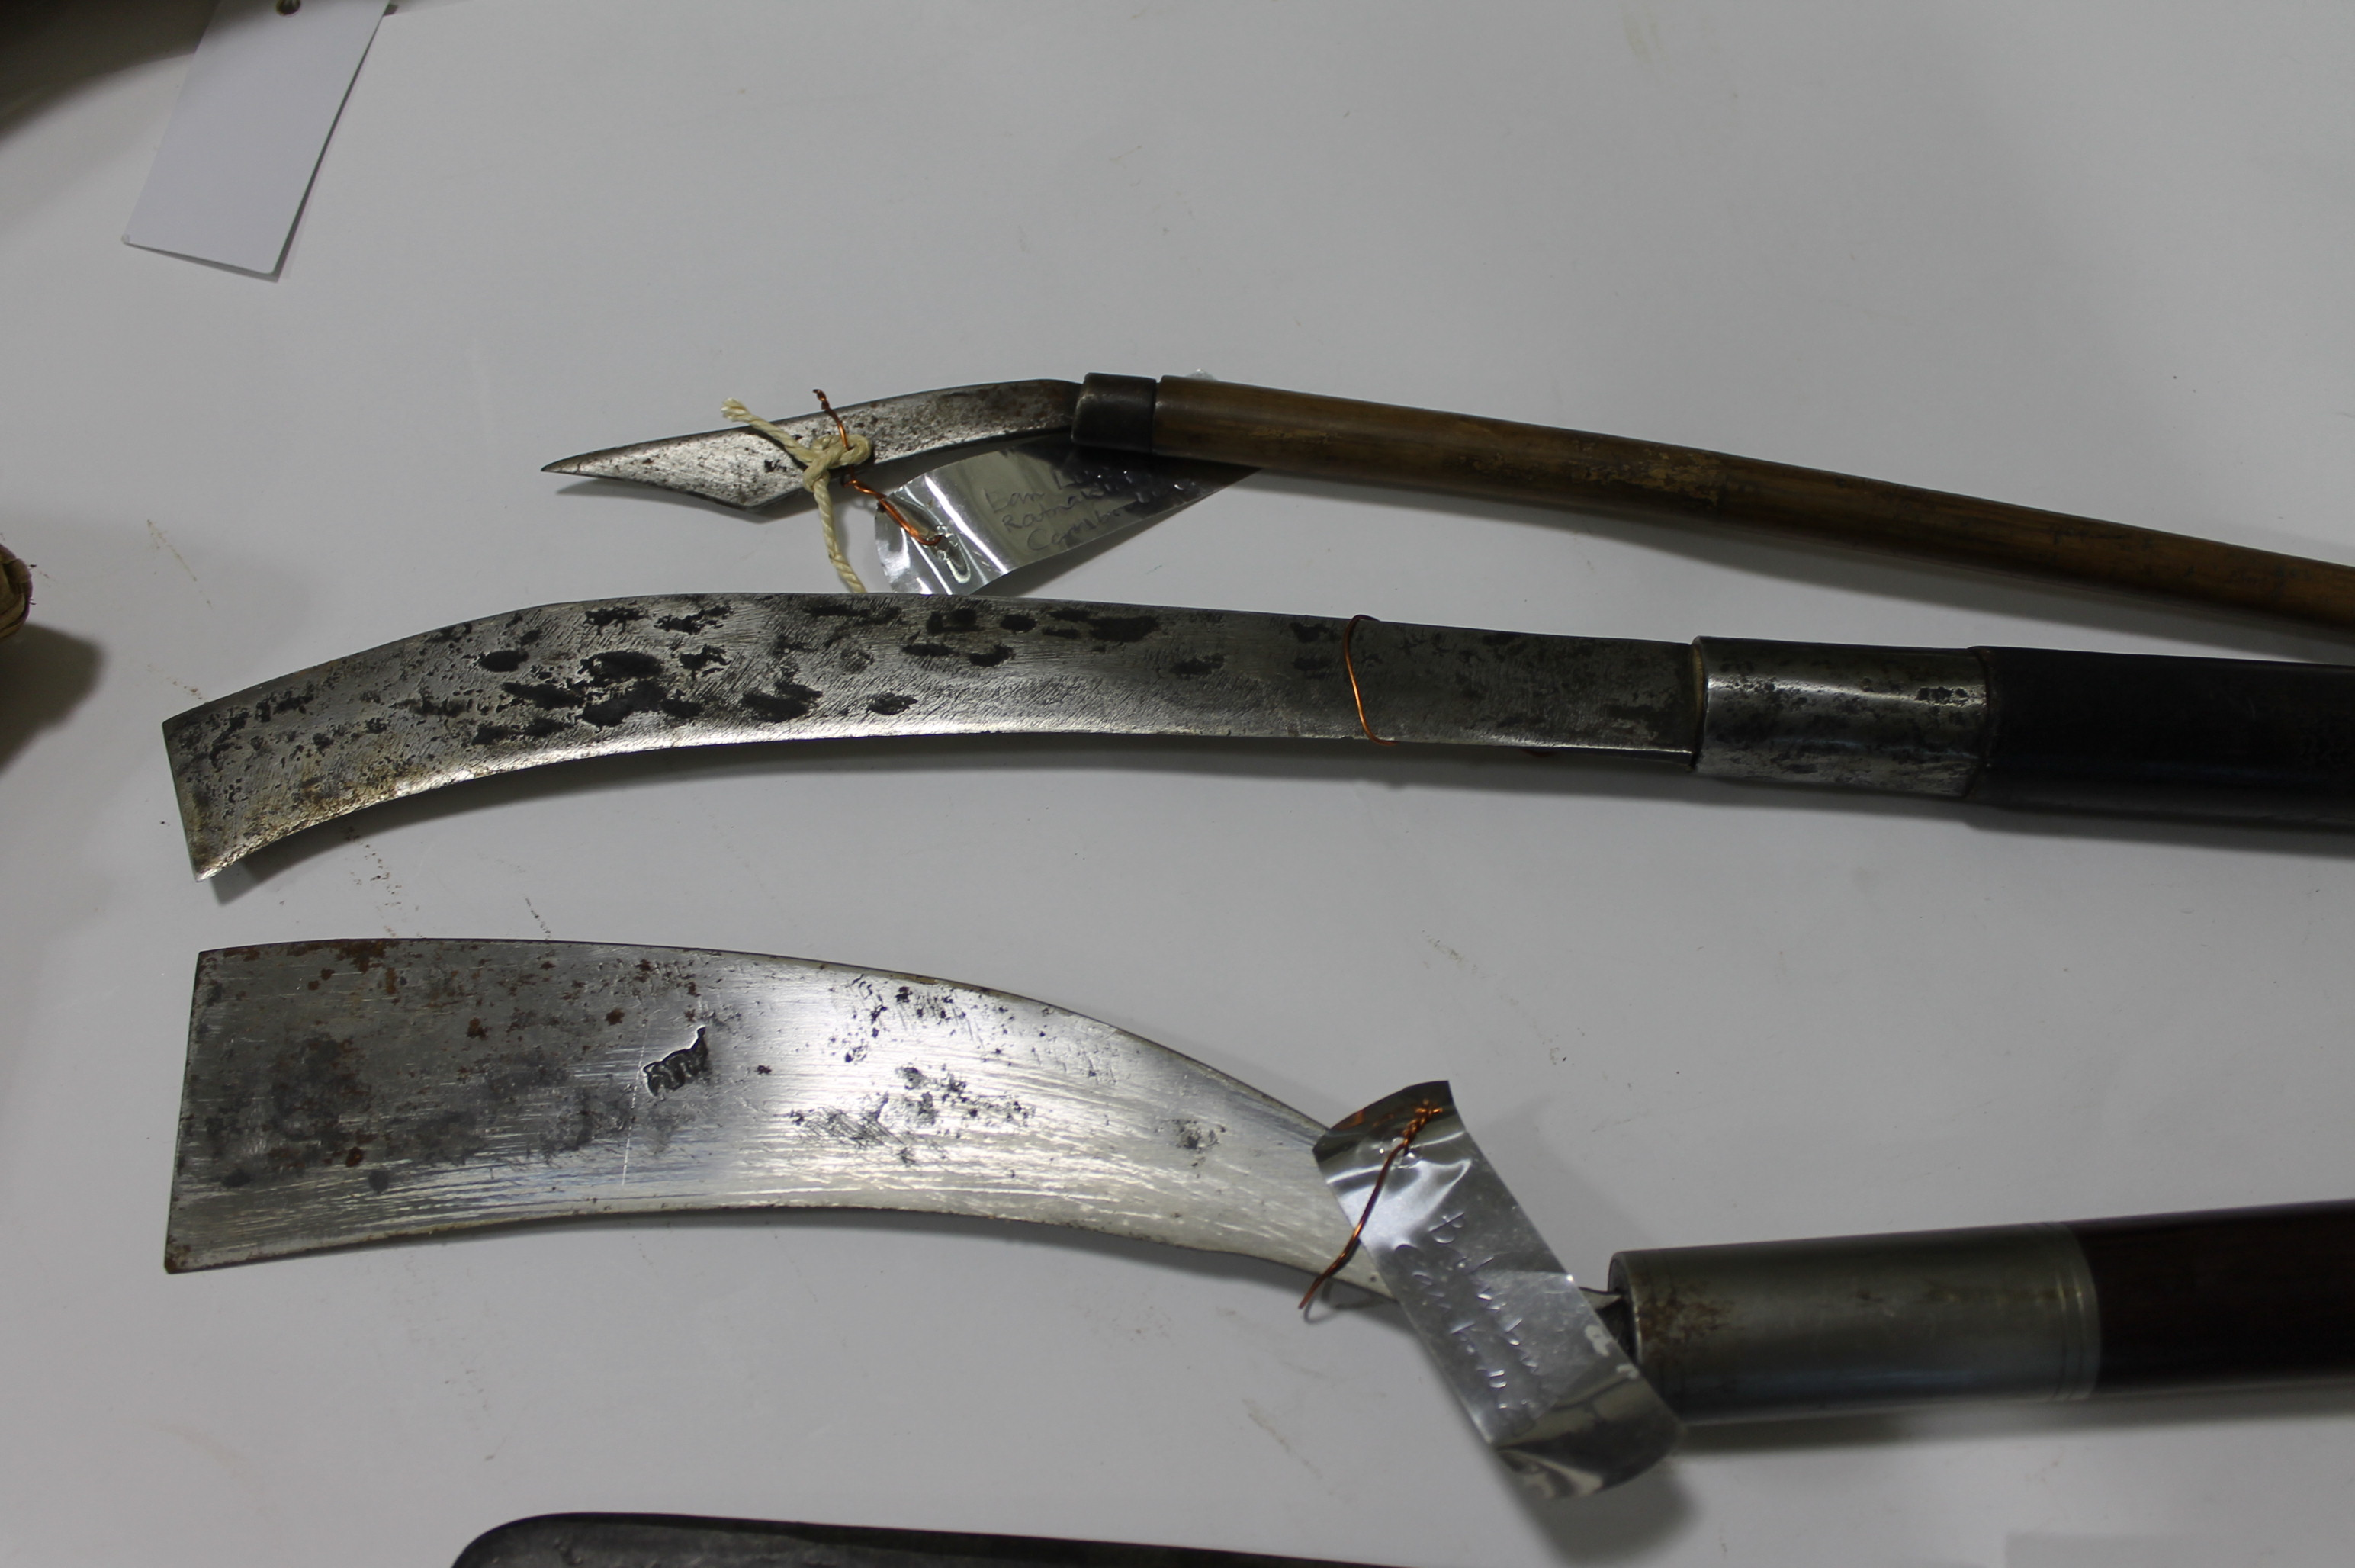 """Lot 42 - EASTERN KNIVES. Five Eastern knives including a Cambodian Machete style knife with a 10"""" blade,"""